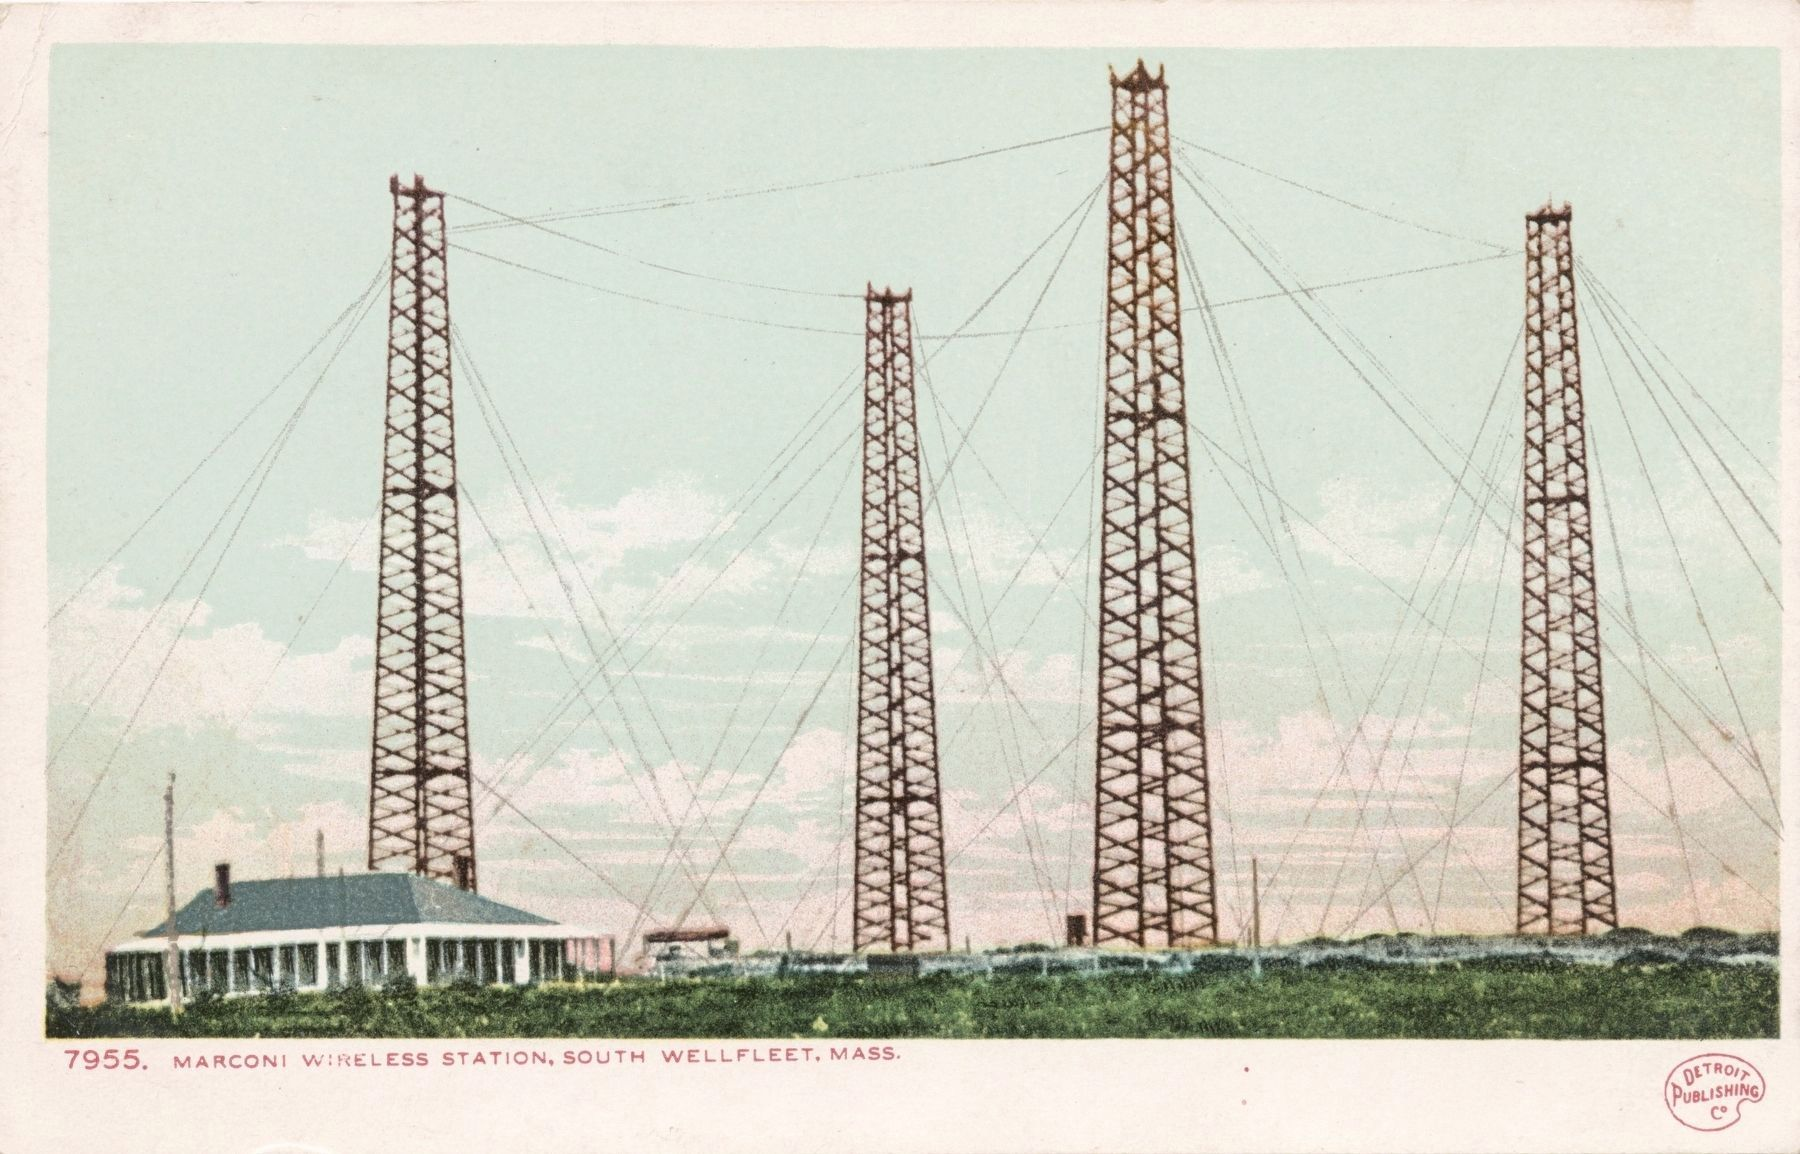 <i>Marconi Wireless Station, South Wellfleet, Mass.</i> image. Click for full size.